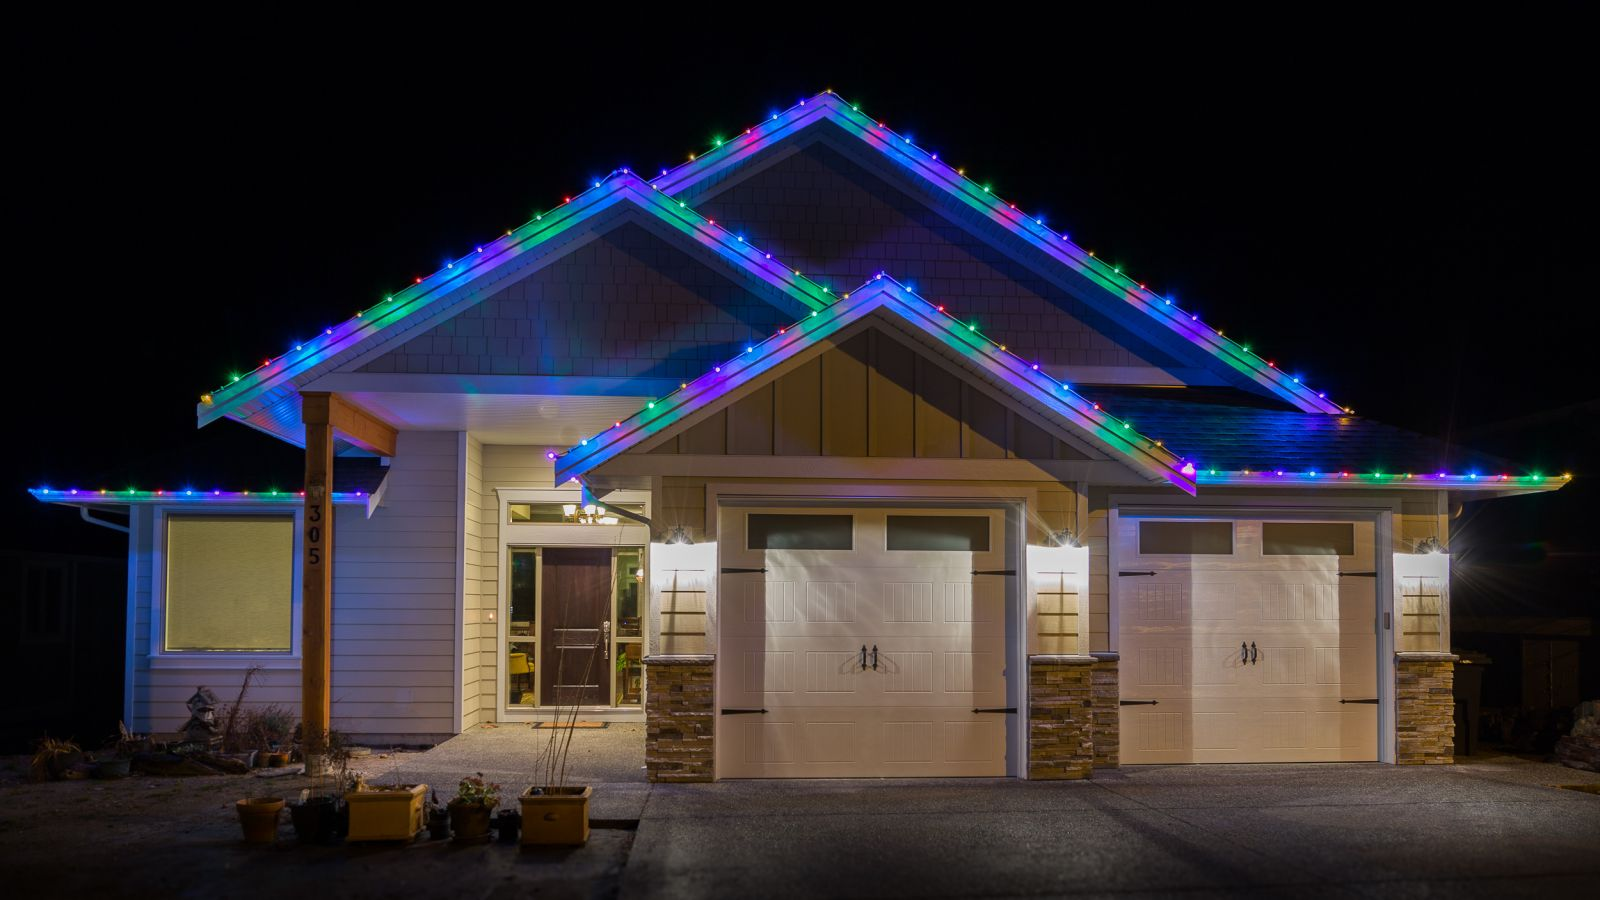 Multi colour cheerful Christmas light installation